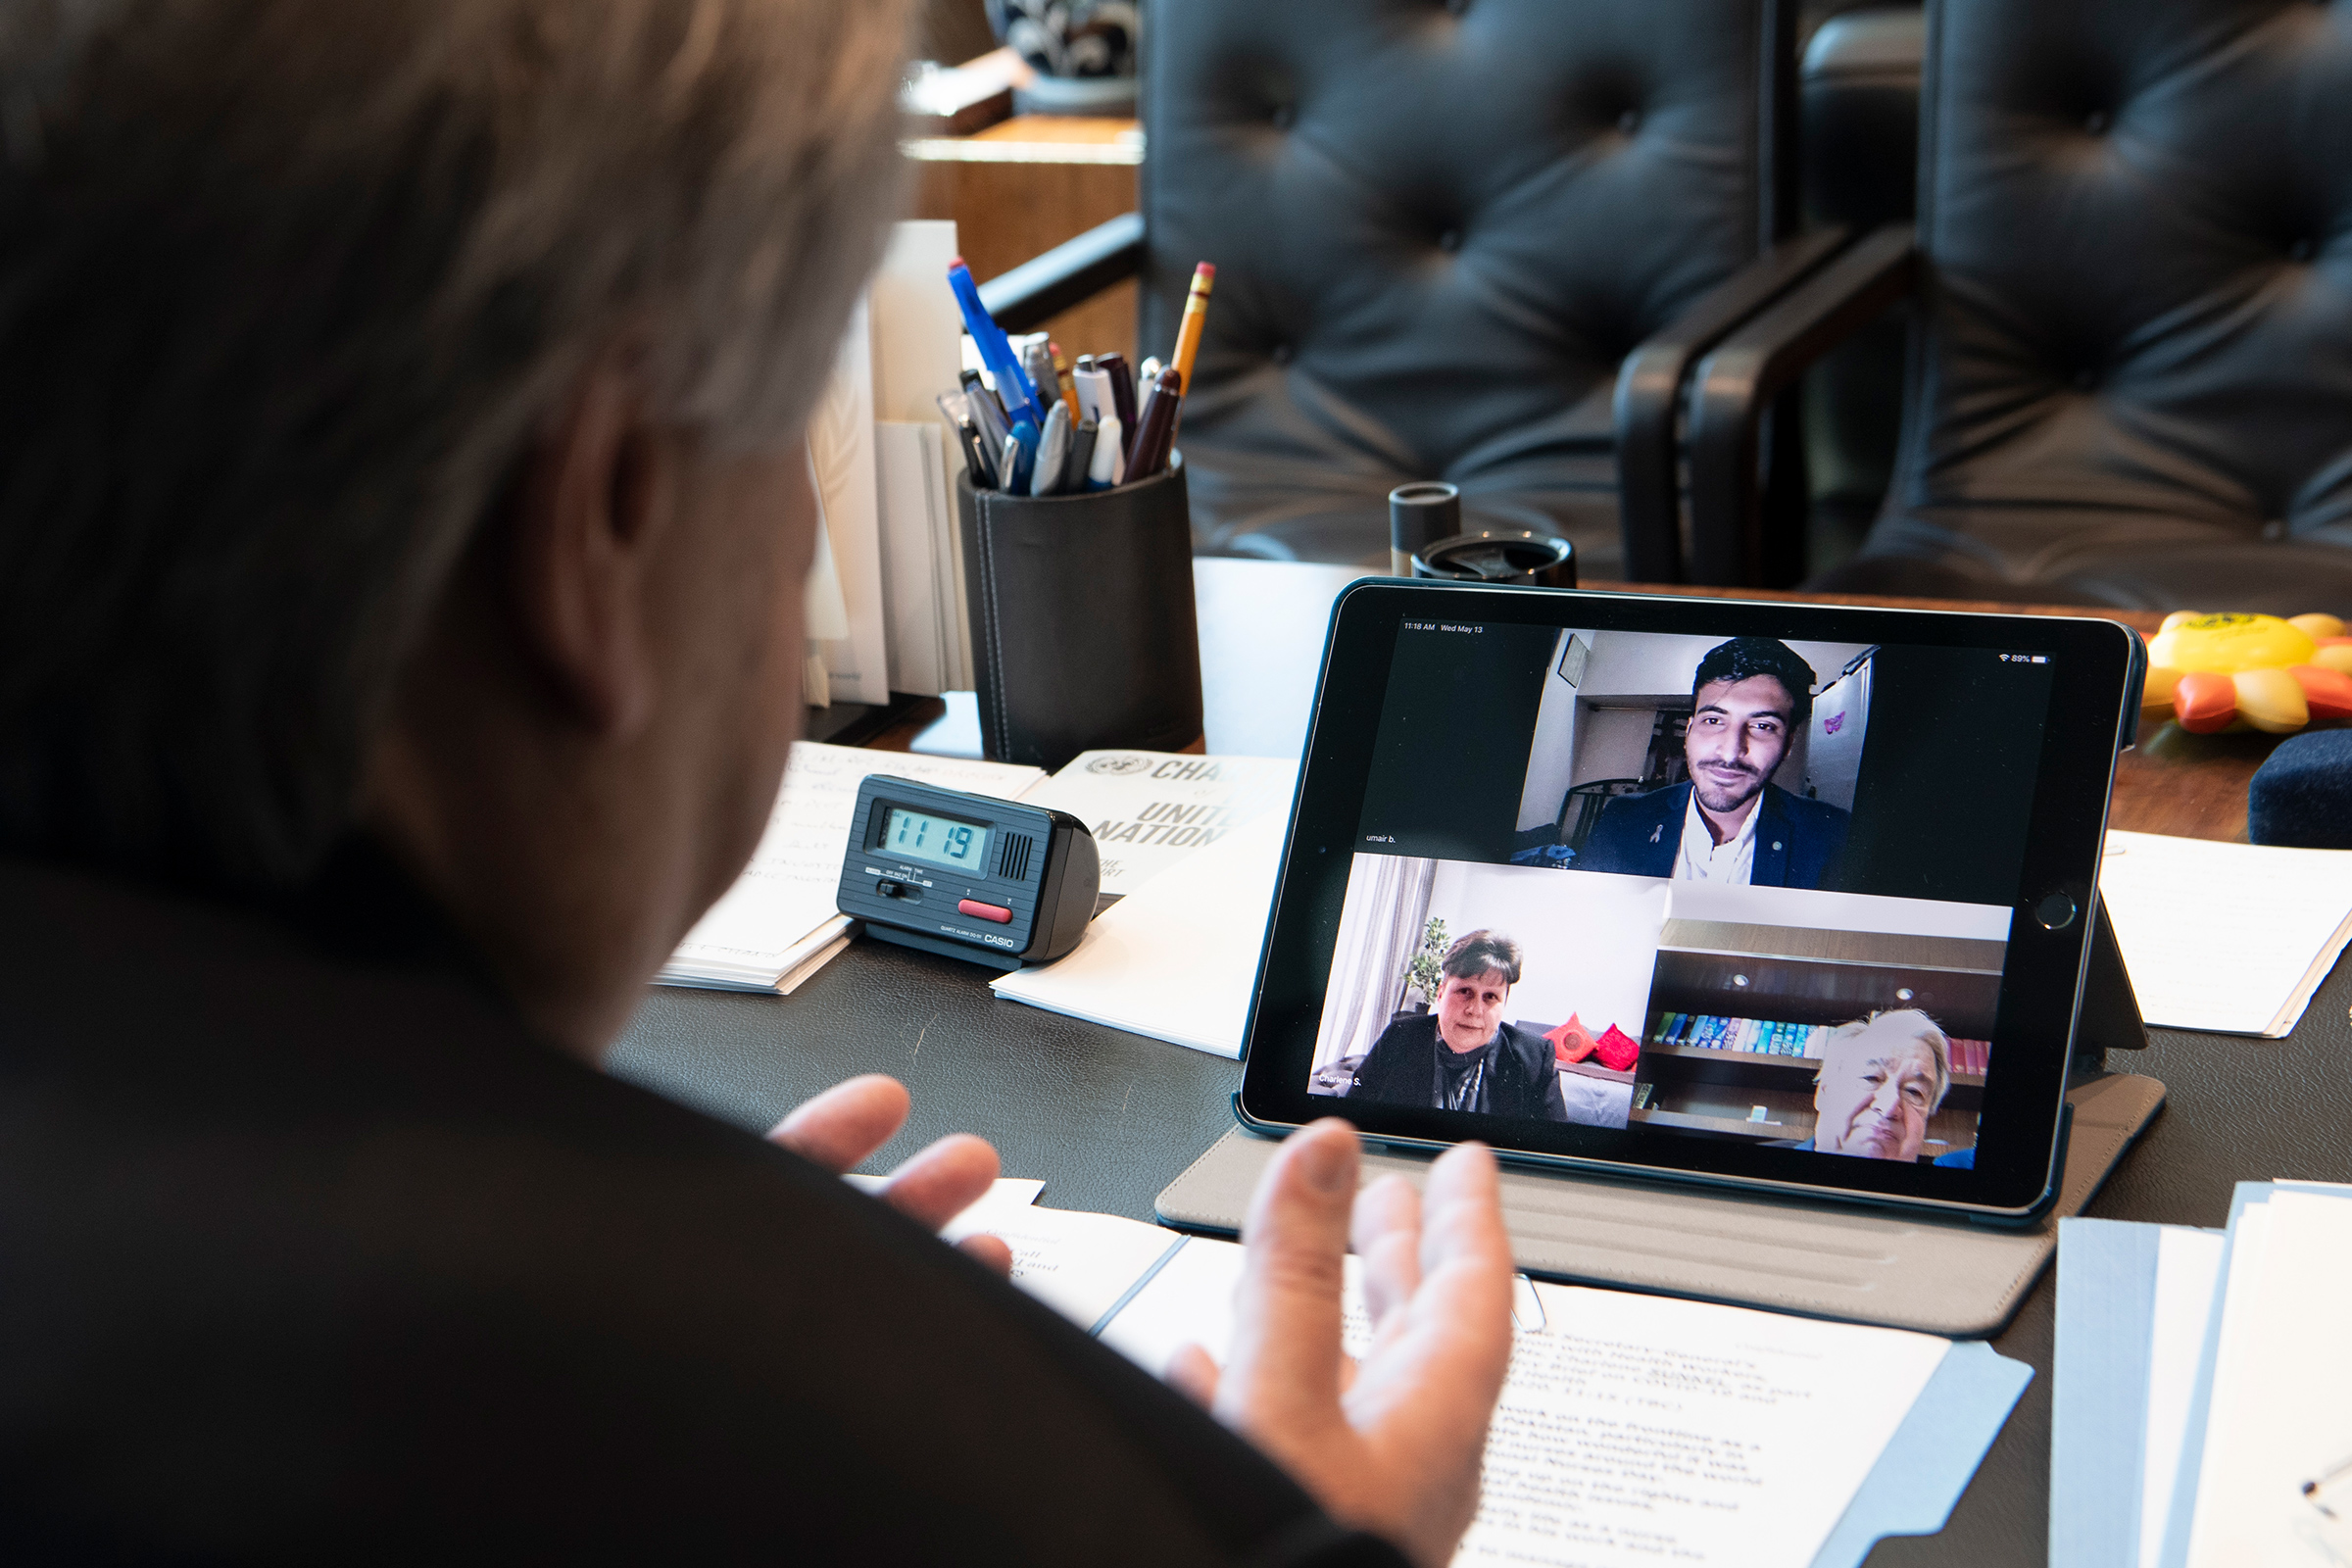 Guterres in a three-way video call with frontline mental health workers, Mr. Umair Bachlani in Pakistan and Ms. Charlene Sunkel in South Africa.